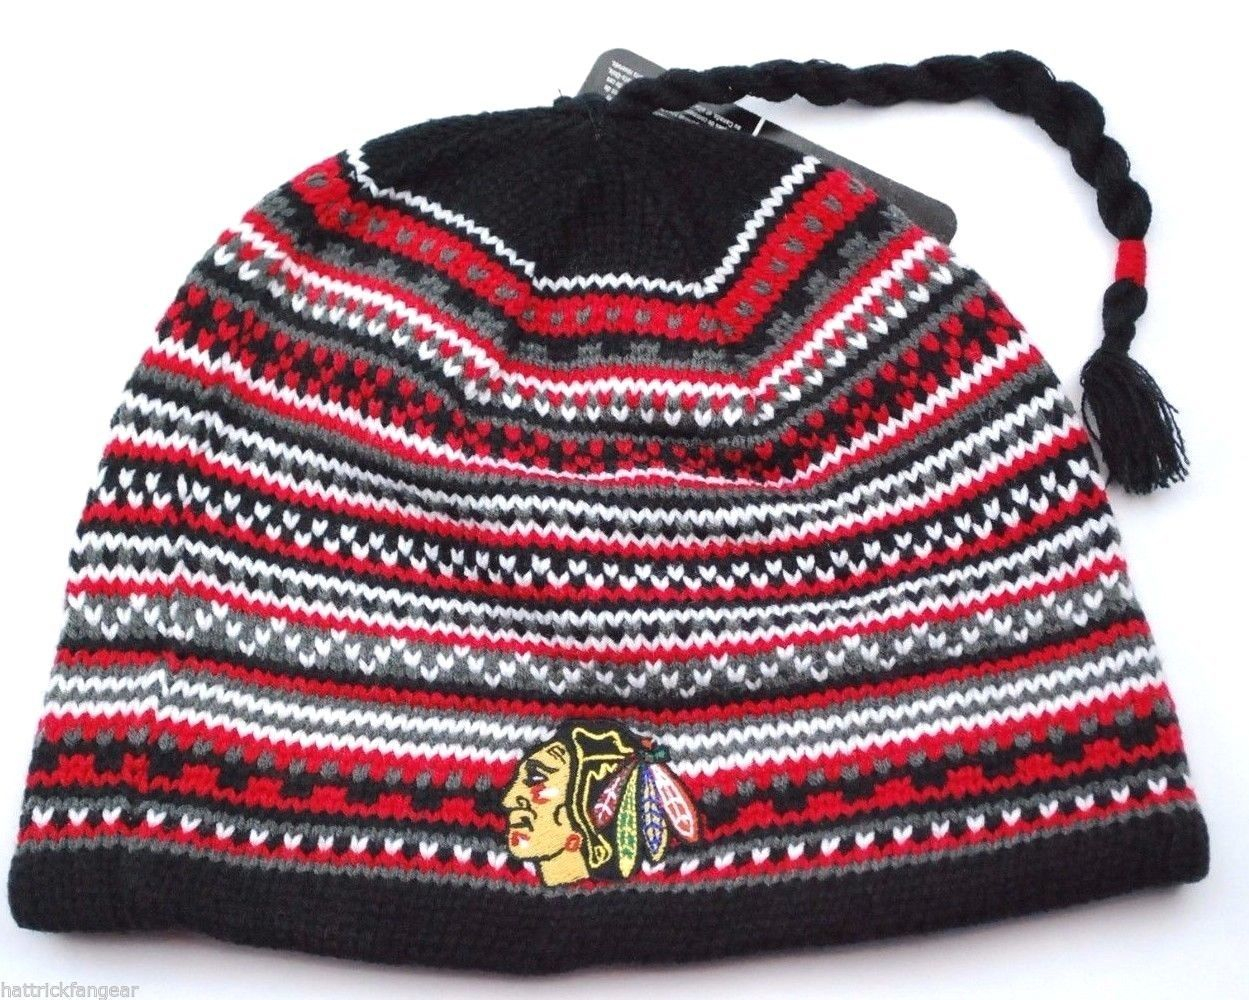 00281b6287a S l1600. S l1600. Previous. CHICAGO BLACKHAWKS REEBOK NHL FACE OFF TASSEL  KNIT WINTER HOCKEY HAT BEANIE · CHICAGO BLACKHAWKS ...